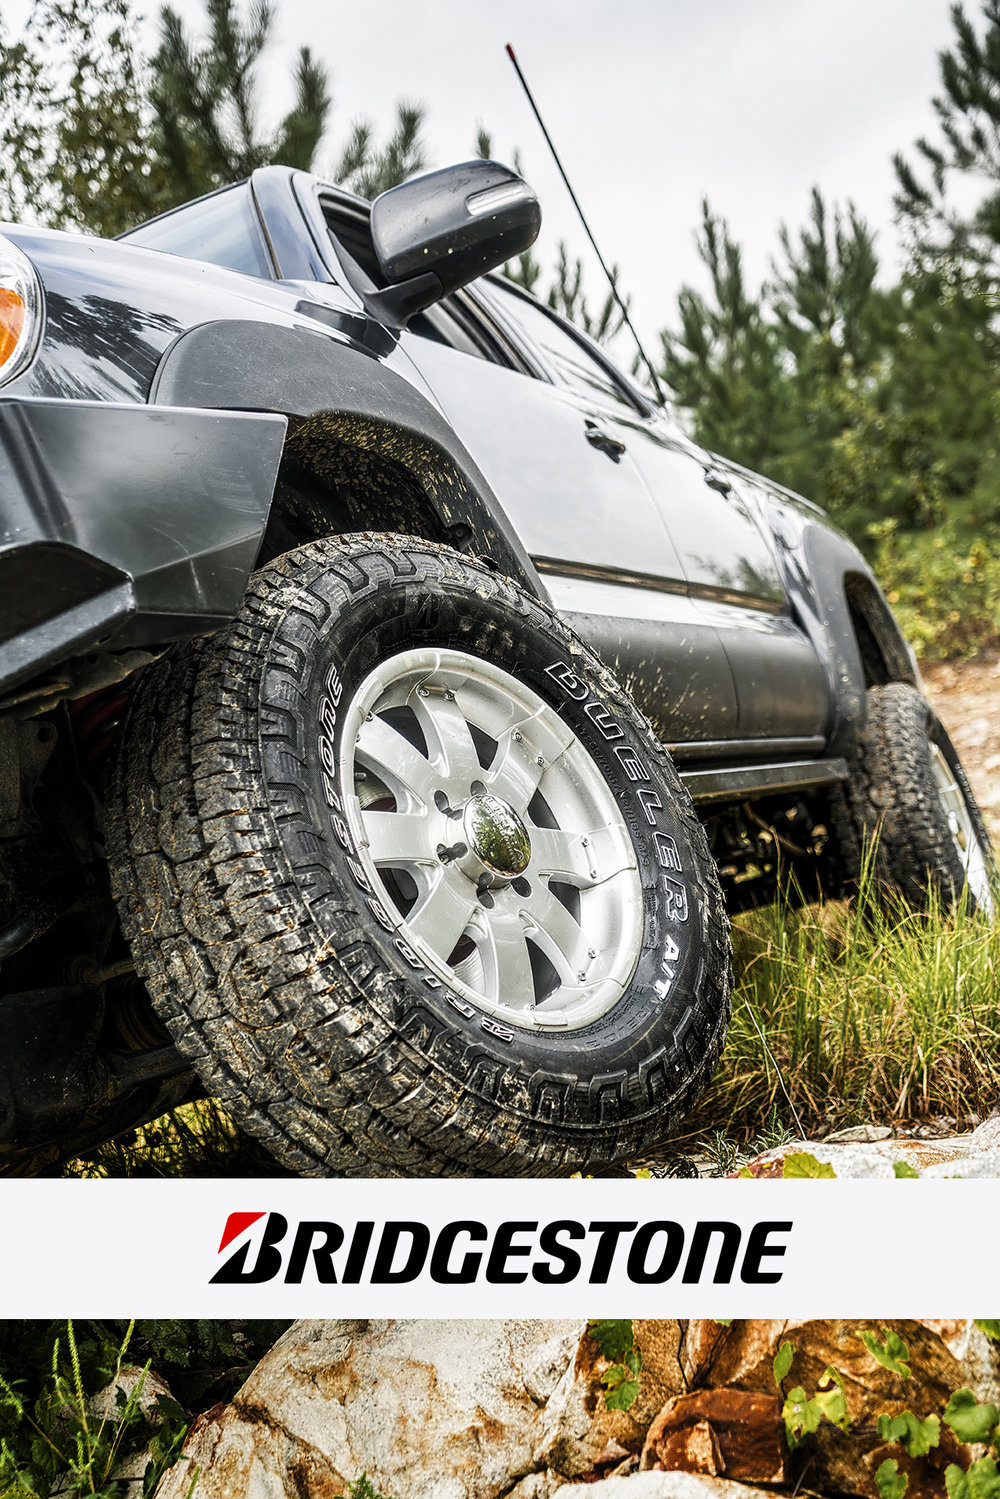 Bridgestone-155_WebResolution_FullSize+copy.jpg